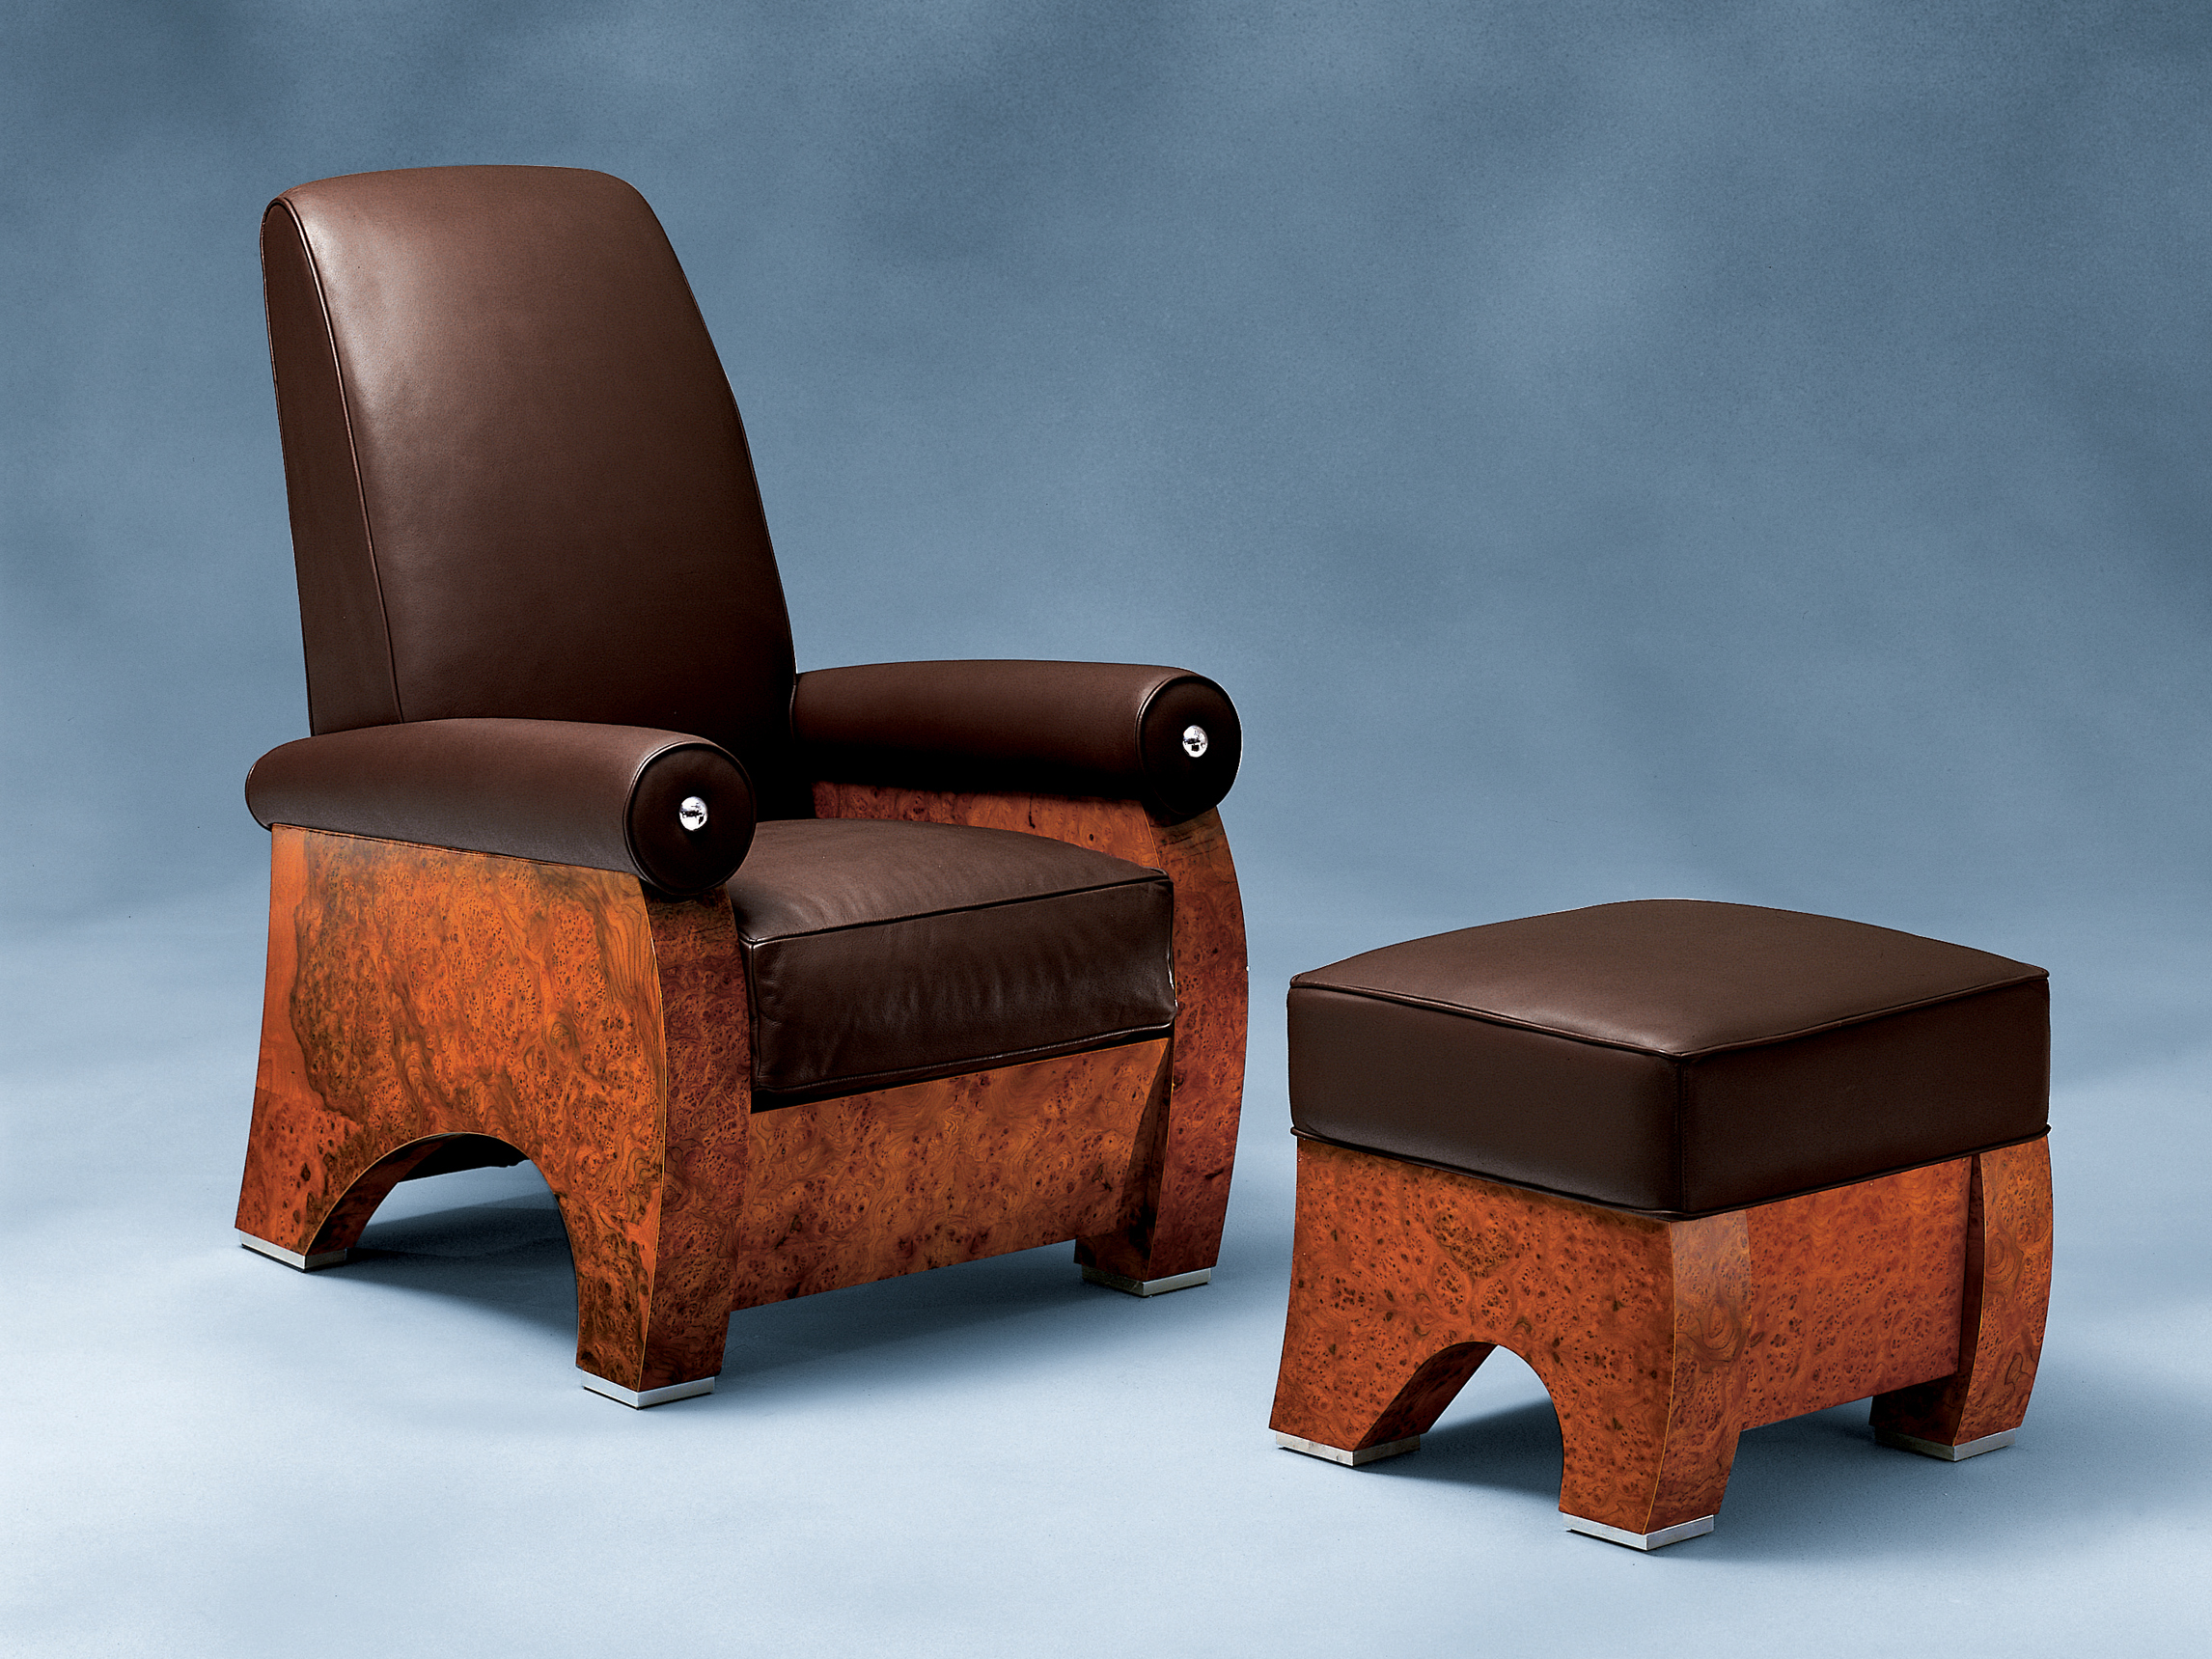 Fauteuil inclinable - Fauteuil en cuir inclinable ...